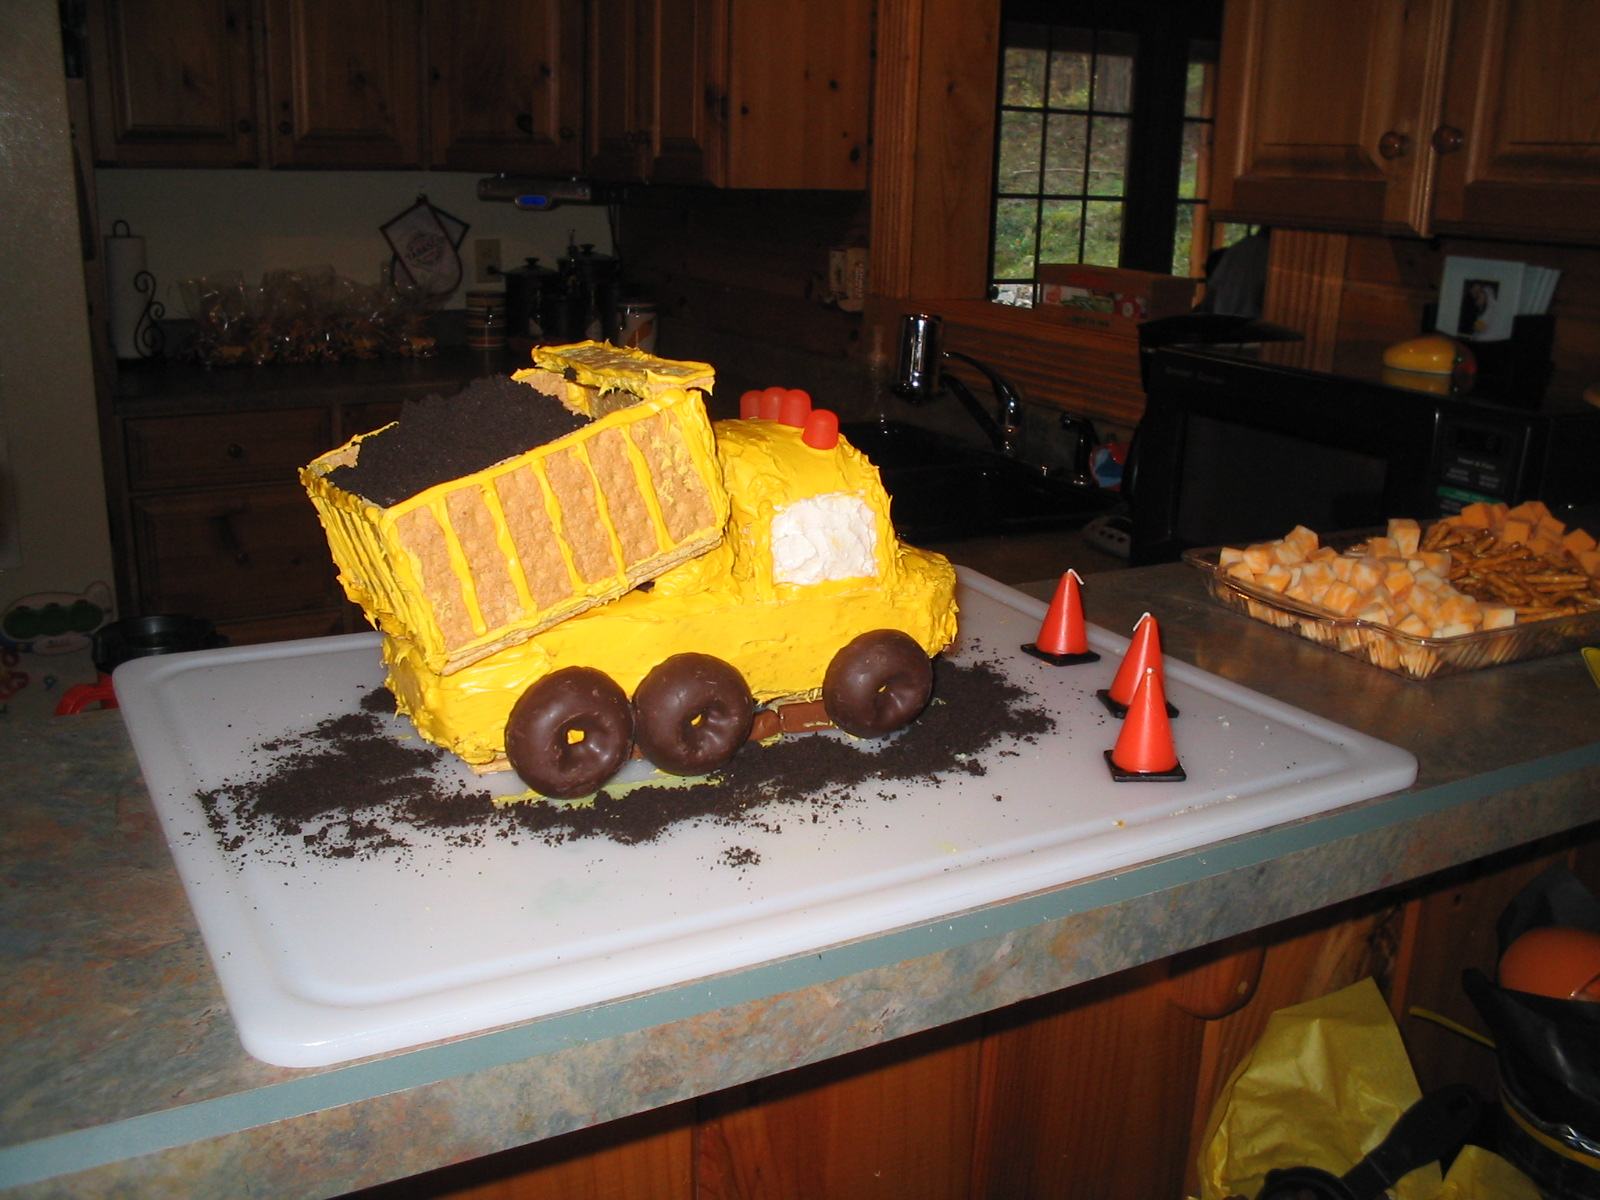 Dump Truck Cake Design : Half-a-Hundred Acre Wood: A Construction-Themed Party